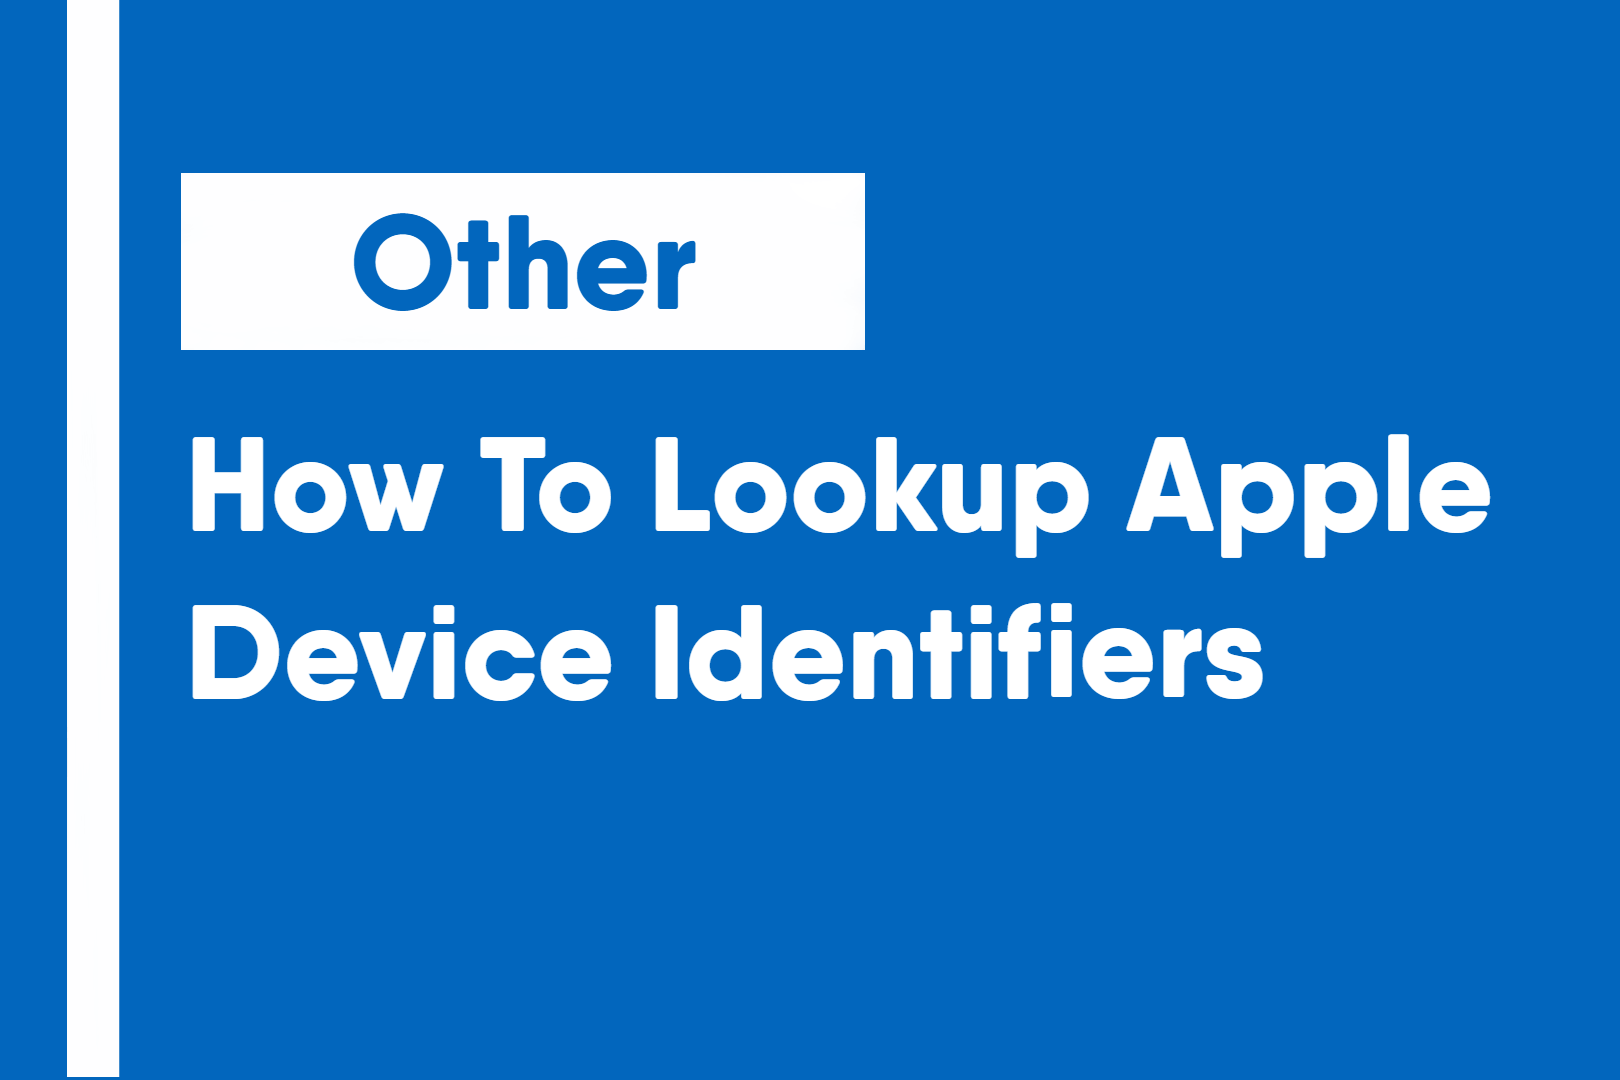 How To Lookup Apple Device Identifiers